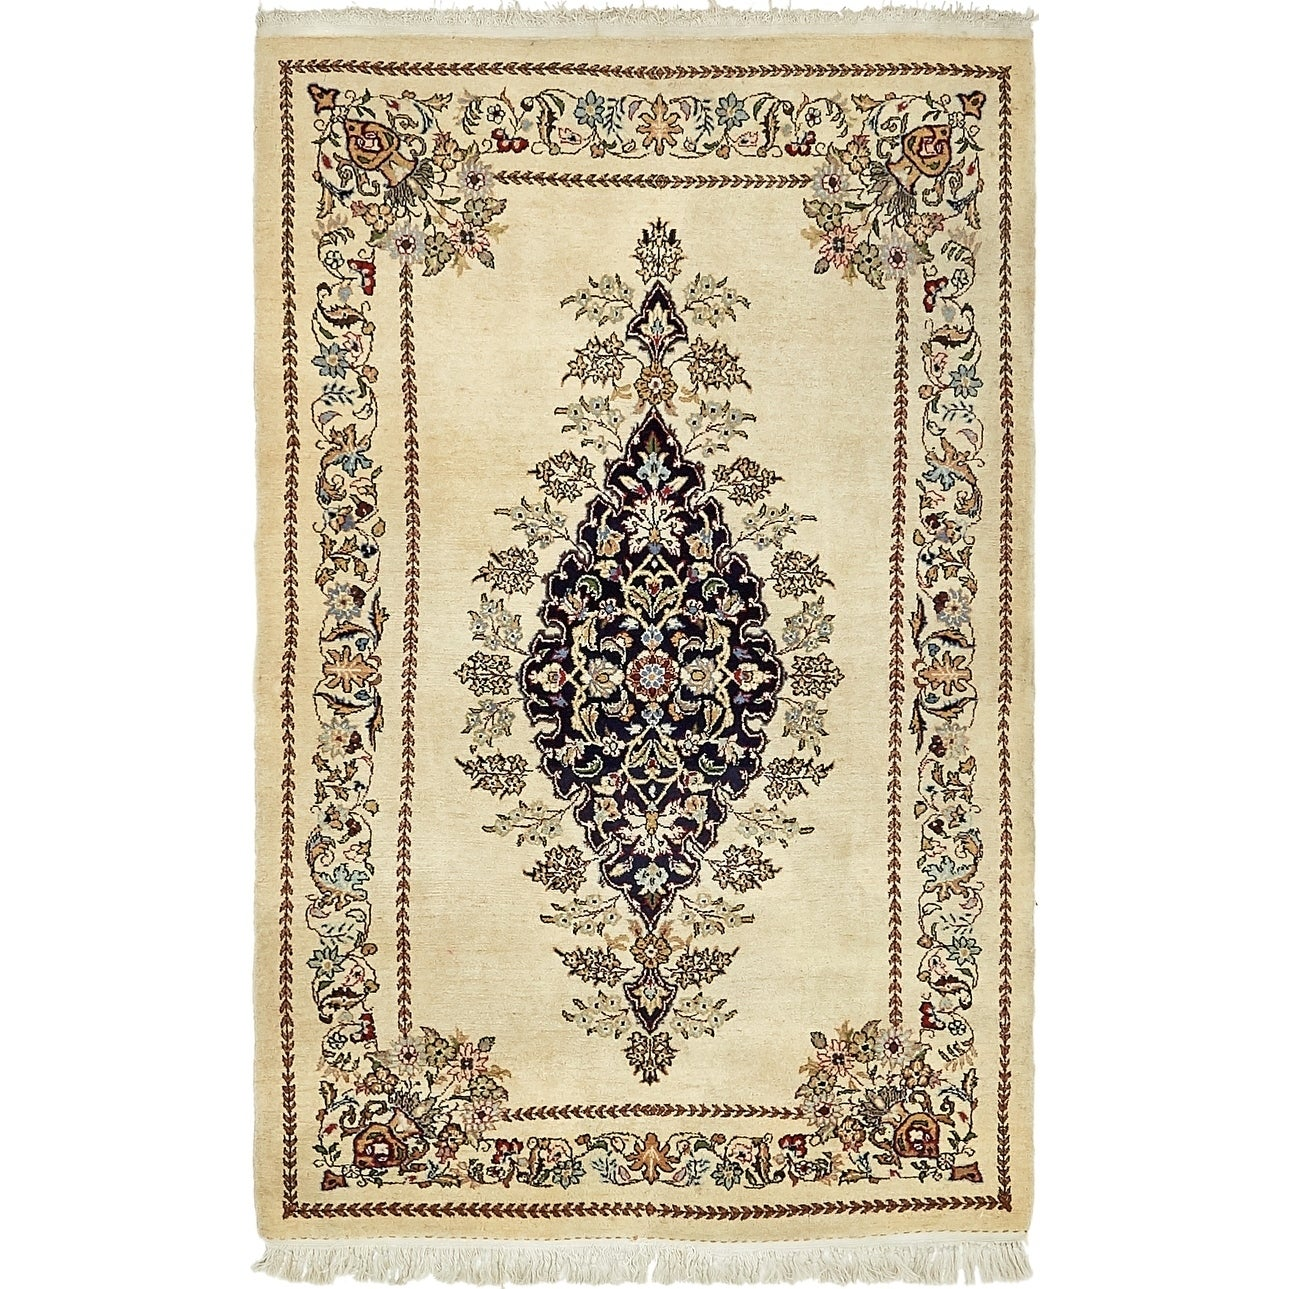 Hand Knotted Kashan Wool Area Rug - 3 4 x 5 5 (Cream - 3 4 x 5 5)